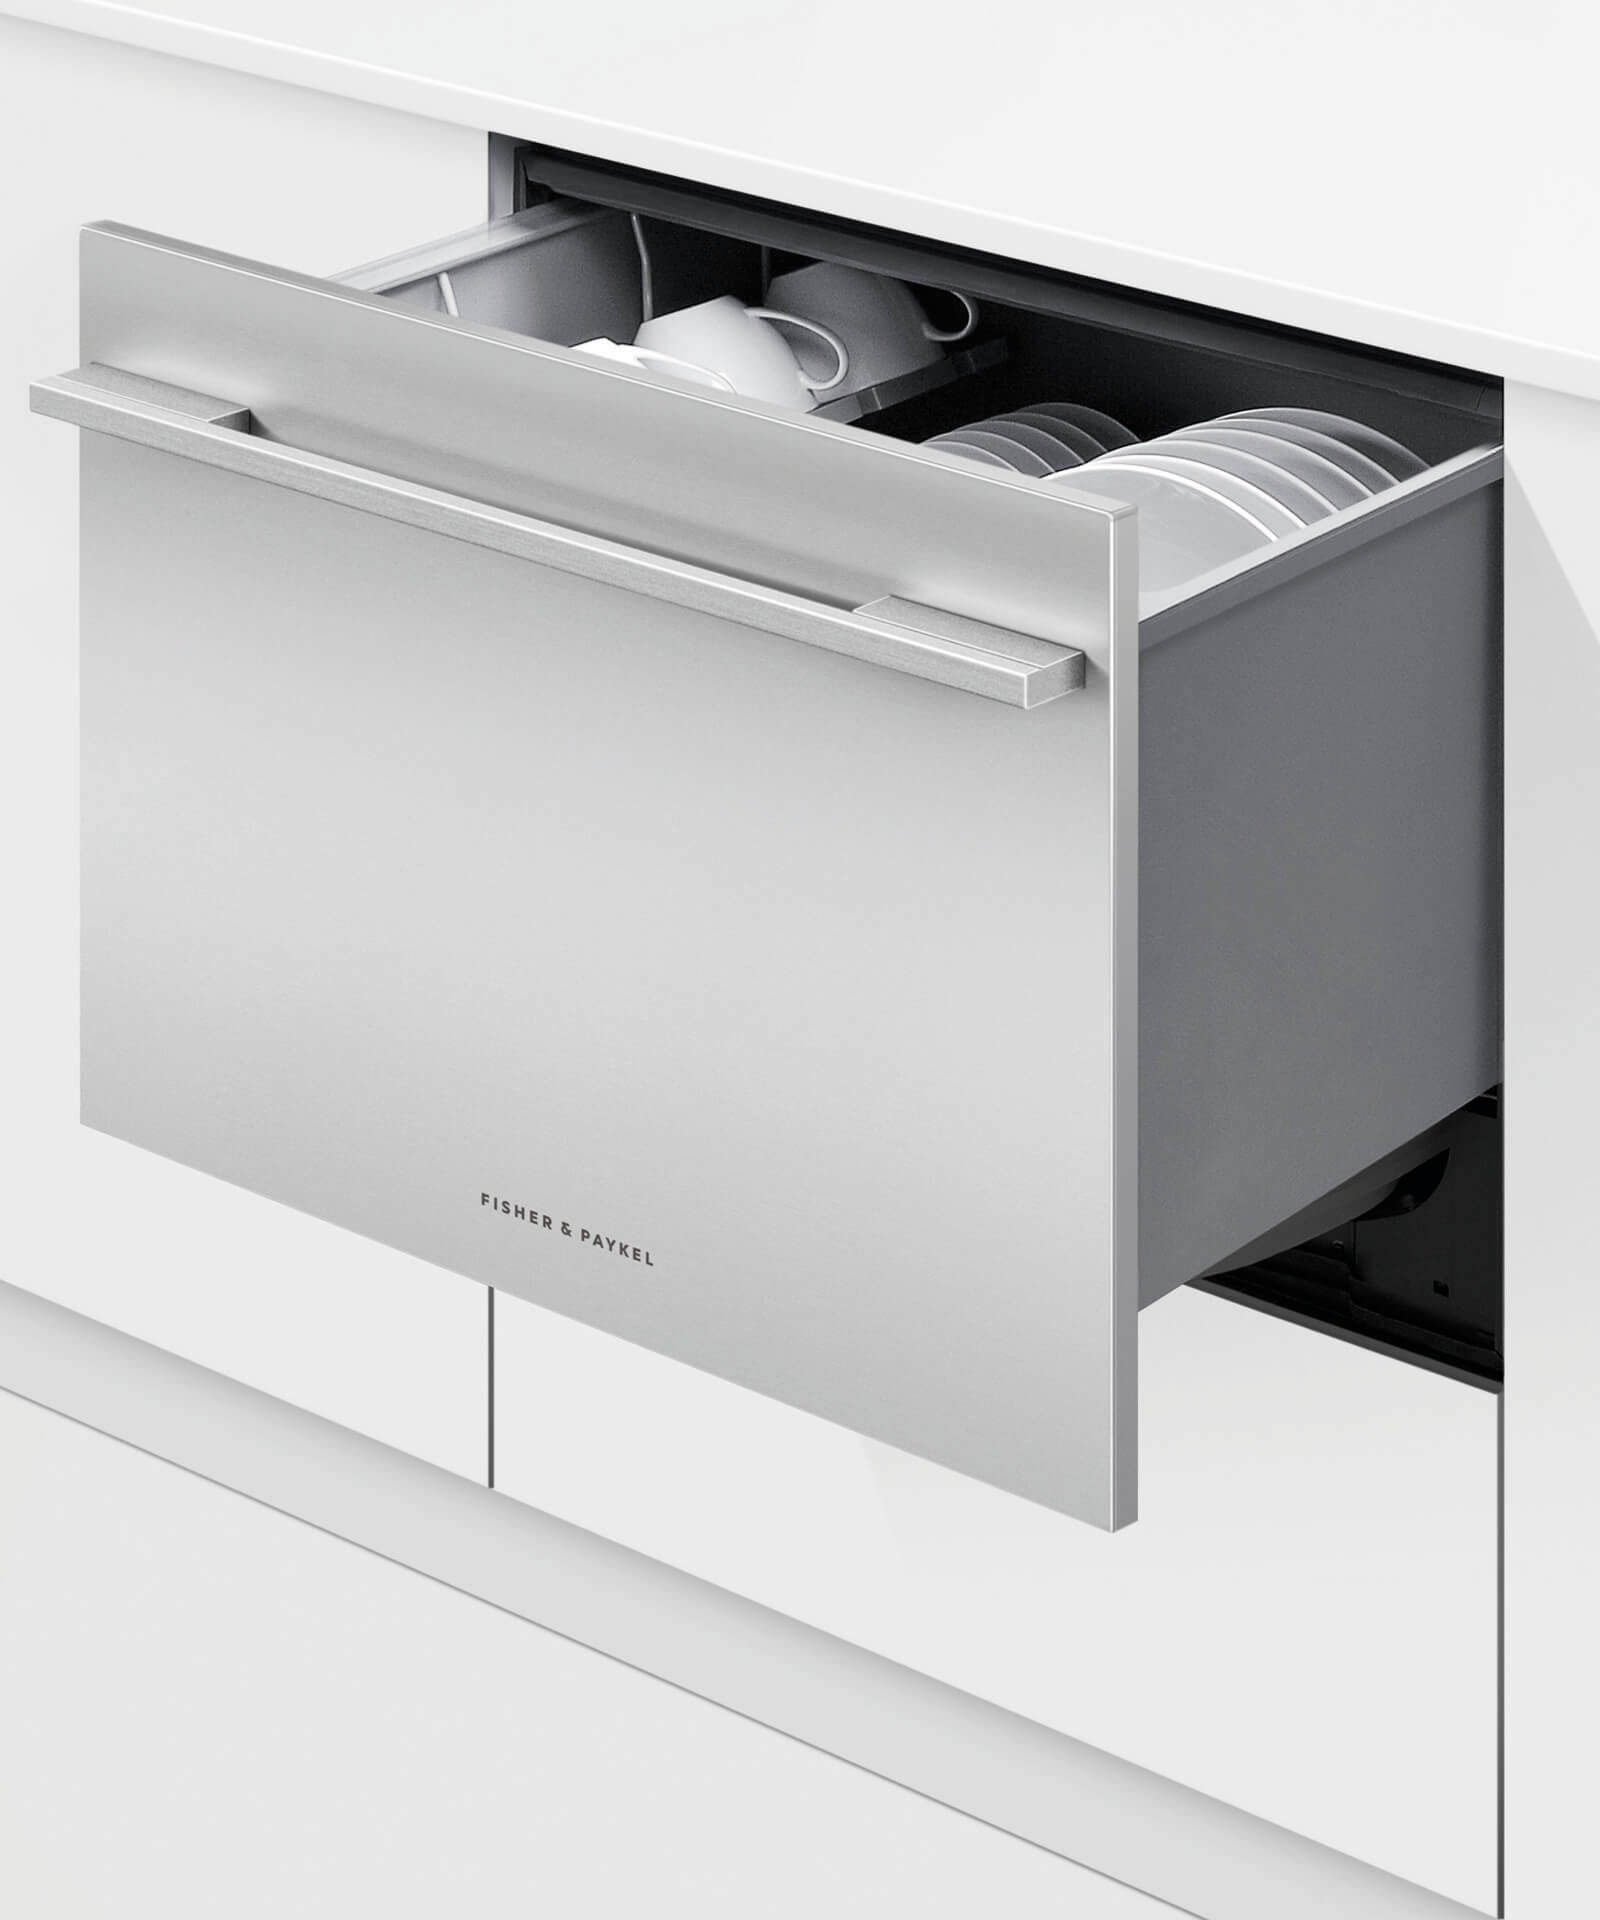 picture troubleshooting fisher drawer paykel imgid dishwasher design pic on trend and designer at for drawers u dishdrawers amazing with home surplus